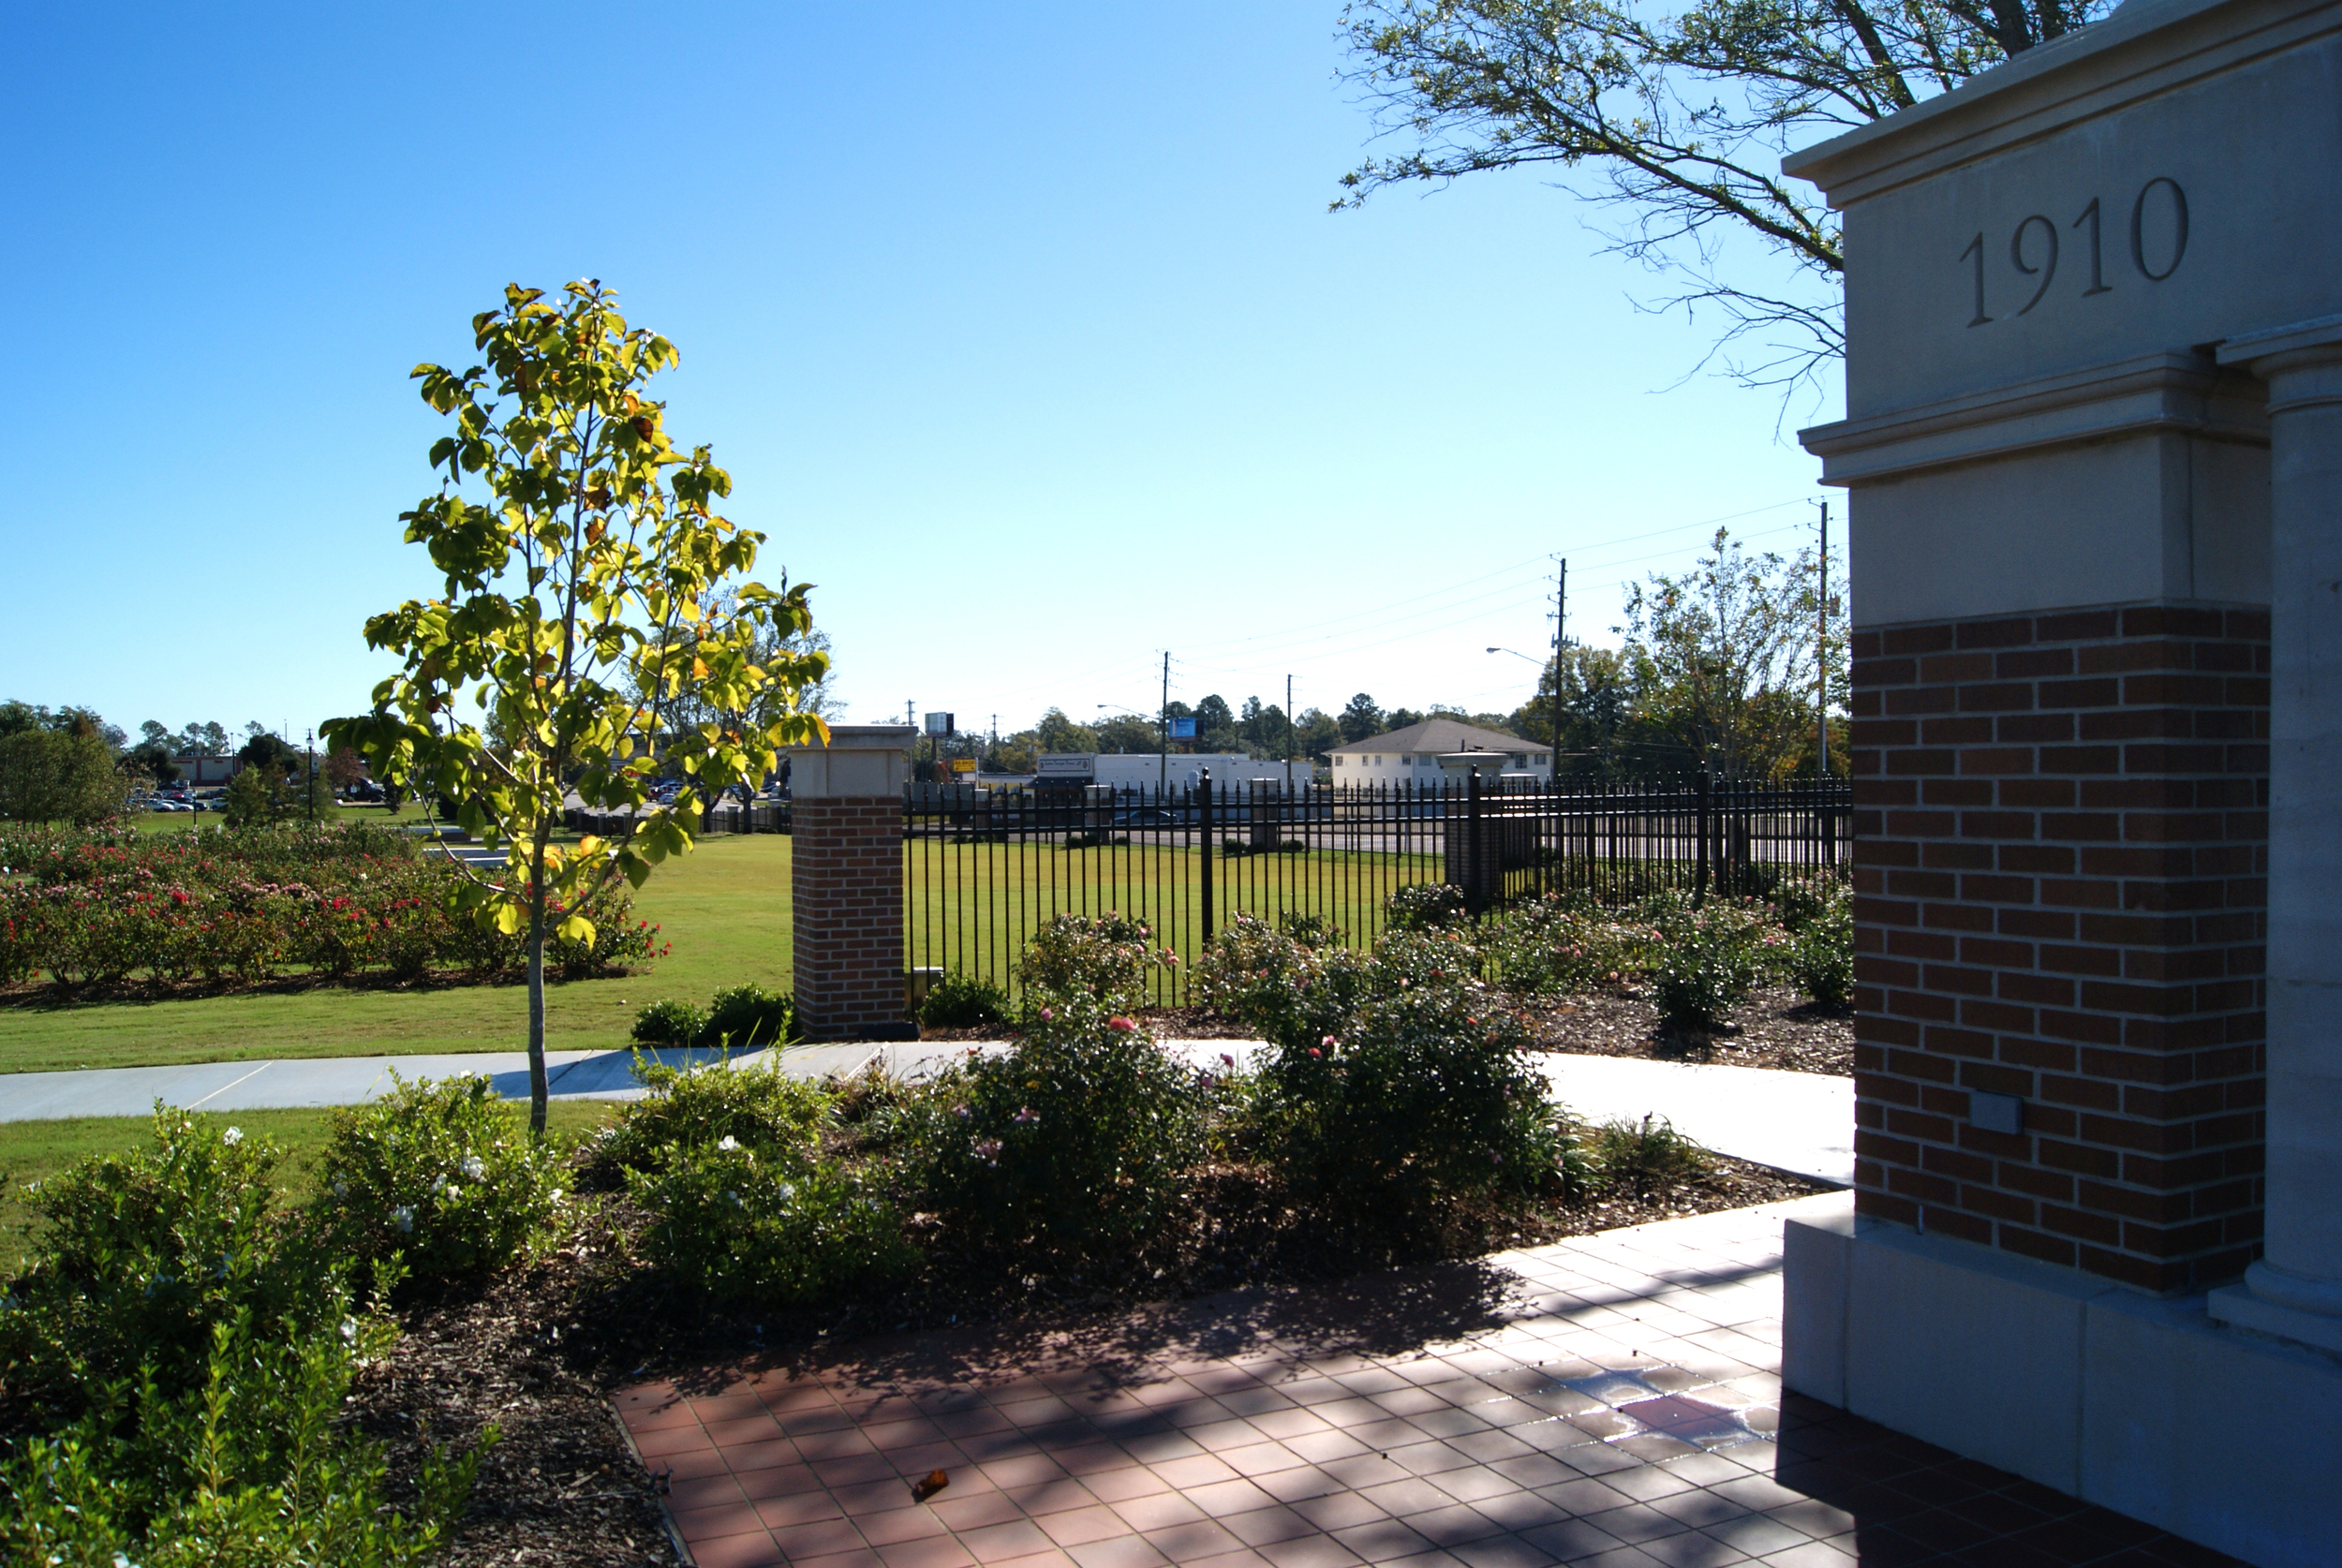 The University of Southern Mississippi reconstructed gateway. October 30, 2014, Hattiesburg, Miss.